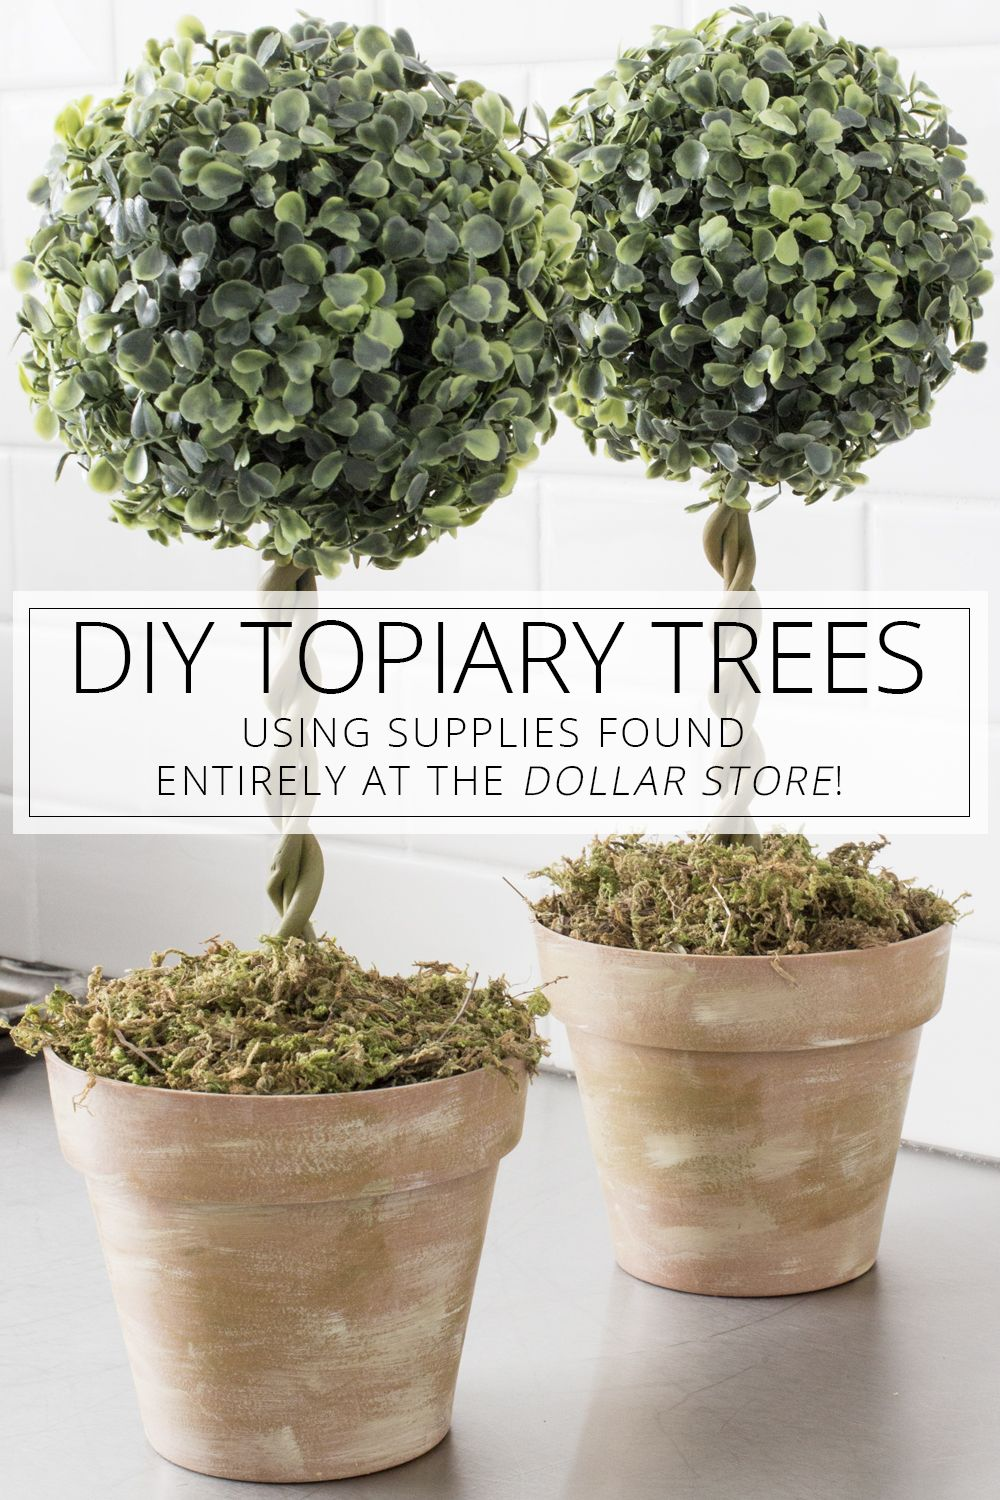 Diy Topiary Trees From Dollar Store Supplies  Topiary Trees